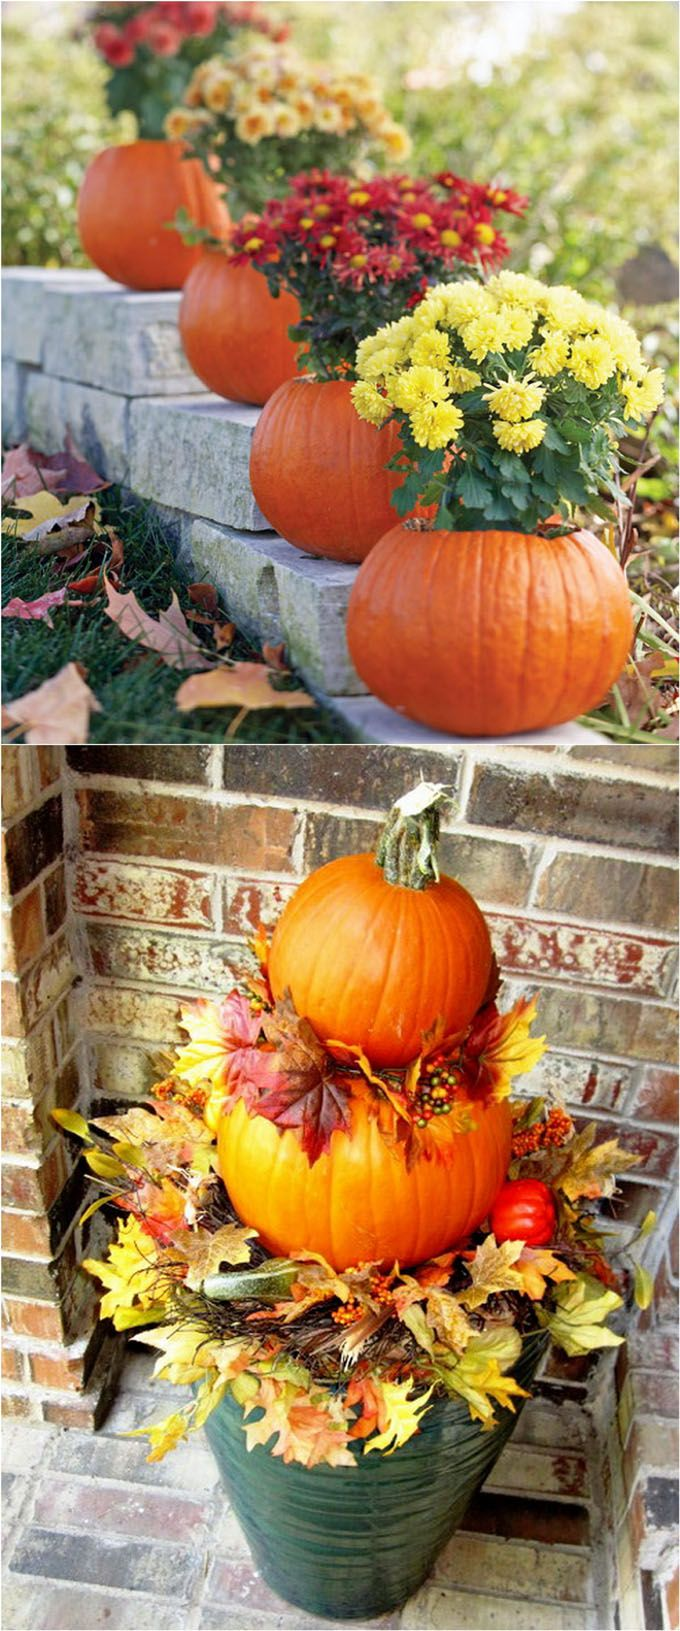 best 20 harvest decorations ideas on pinterest fall harvest decorations fall decor lanterns and fall porch decorations - Fall House Decorations